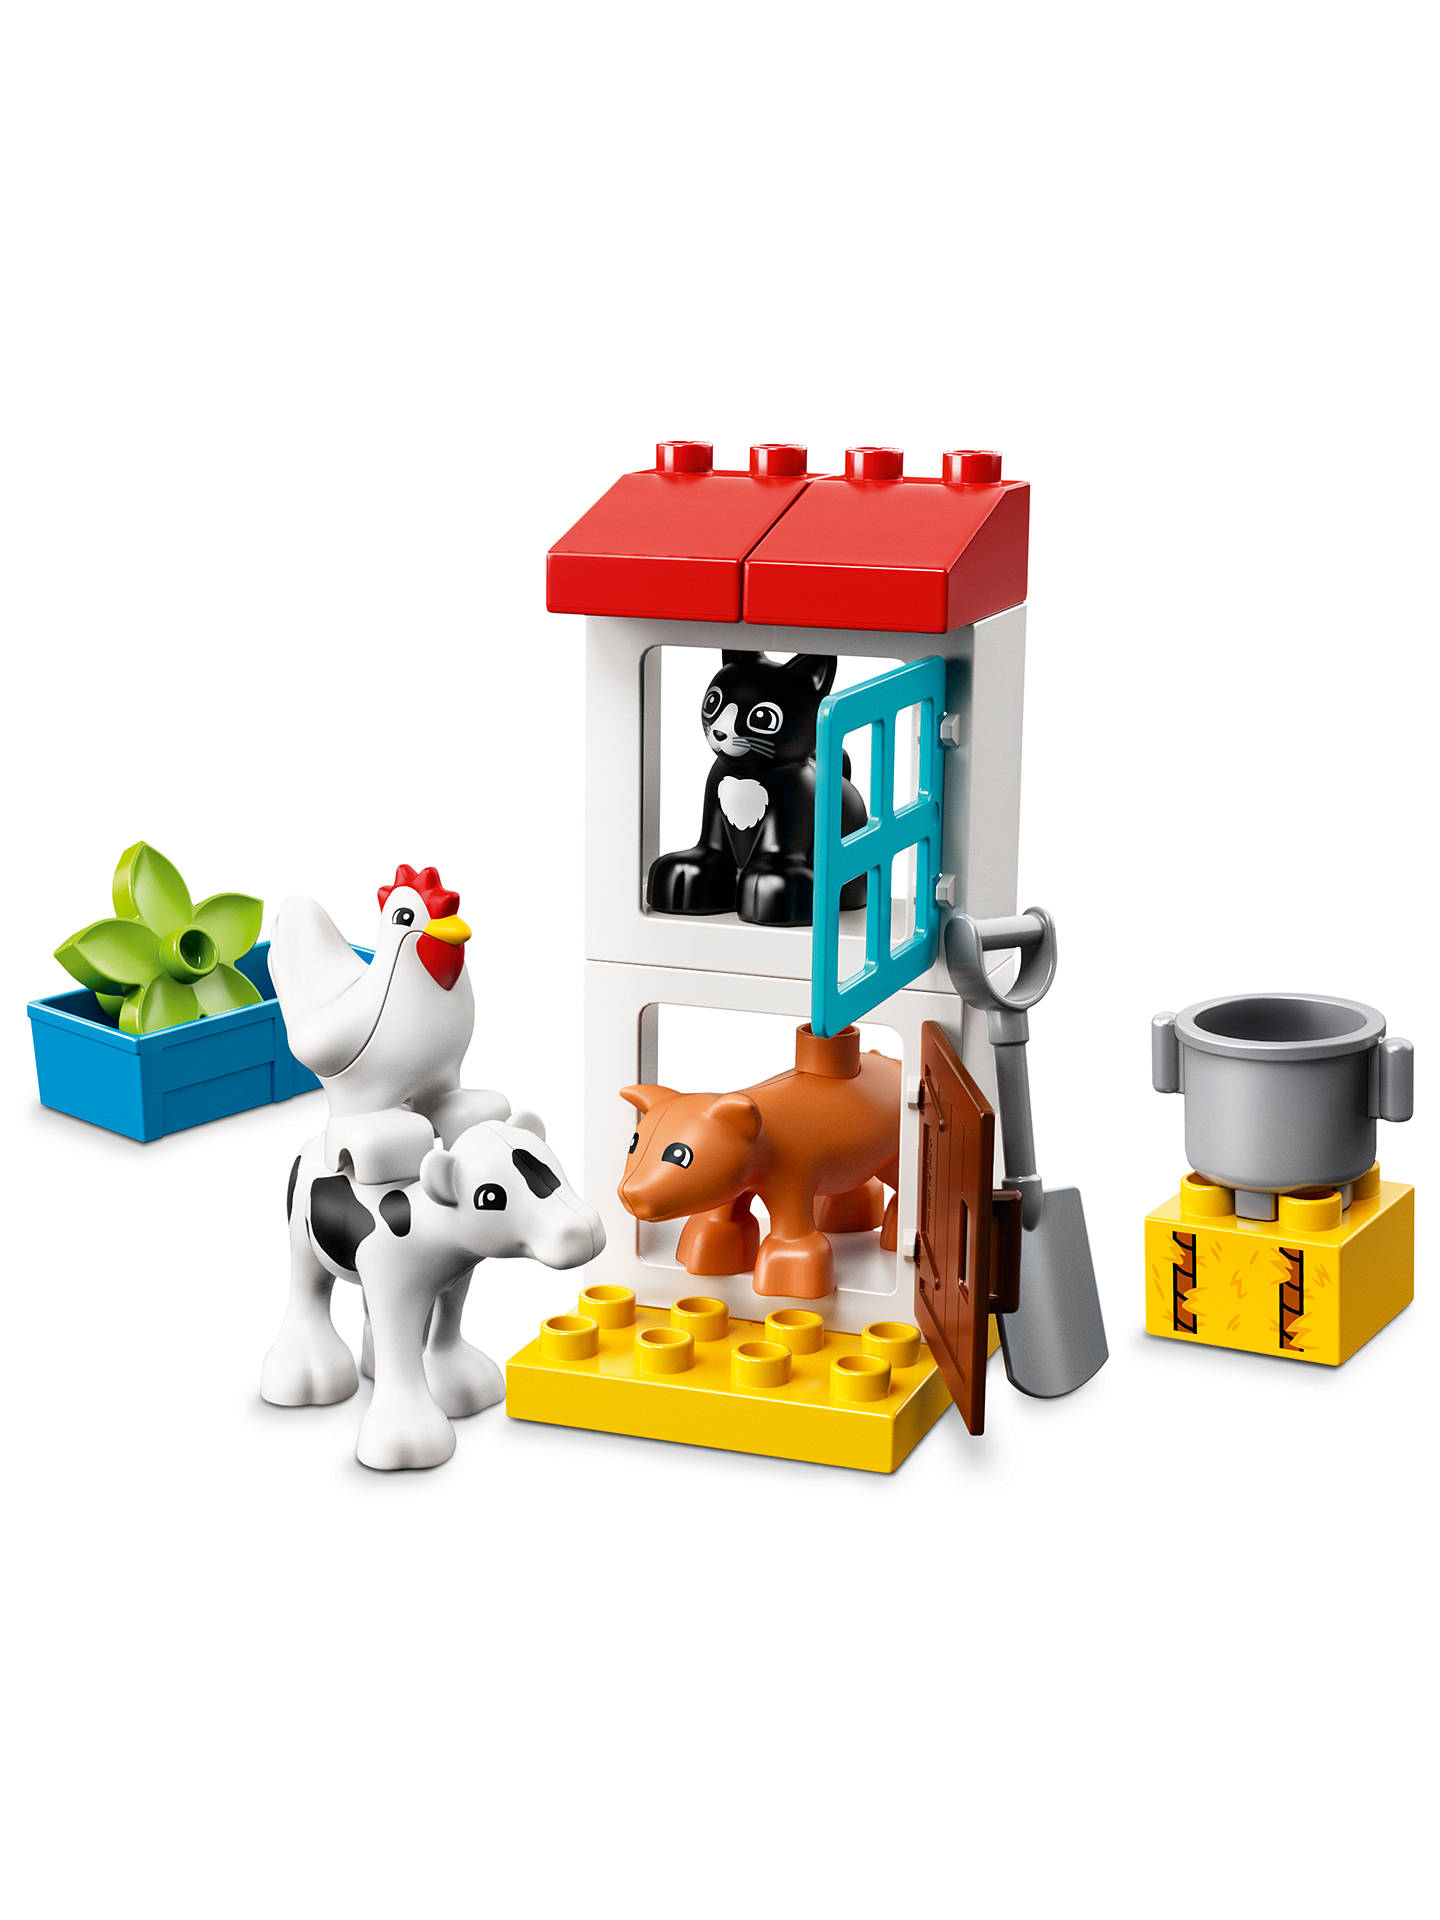 Lego Duplo 10870 Farm Animals At John Lewis Partners